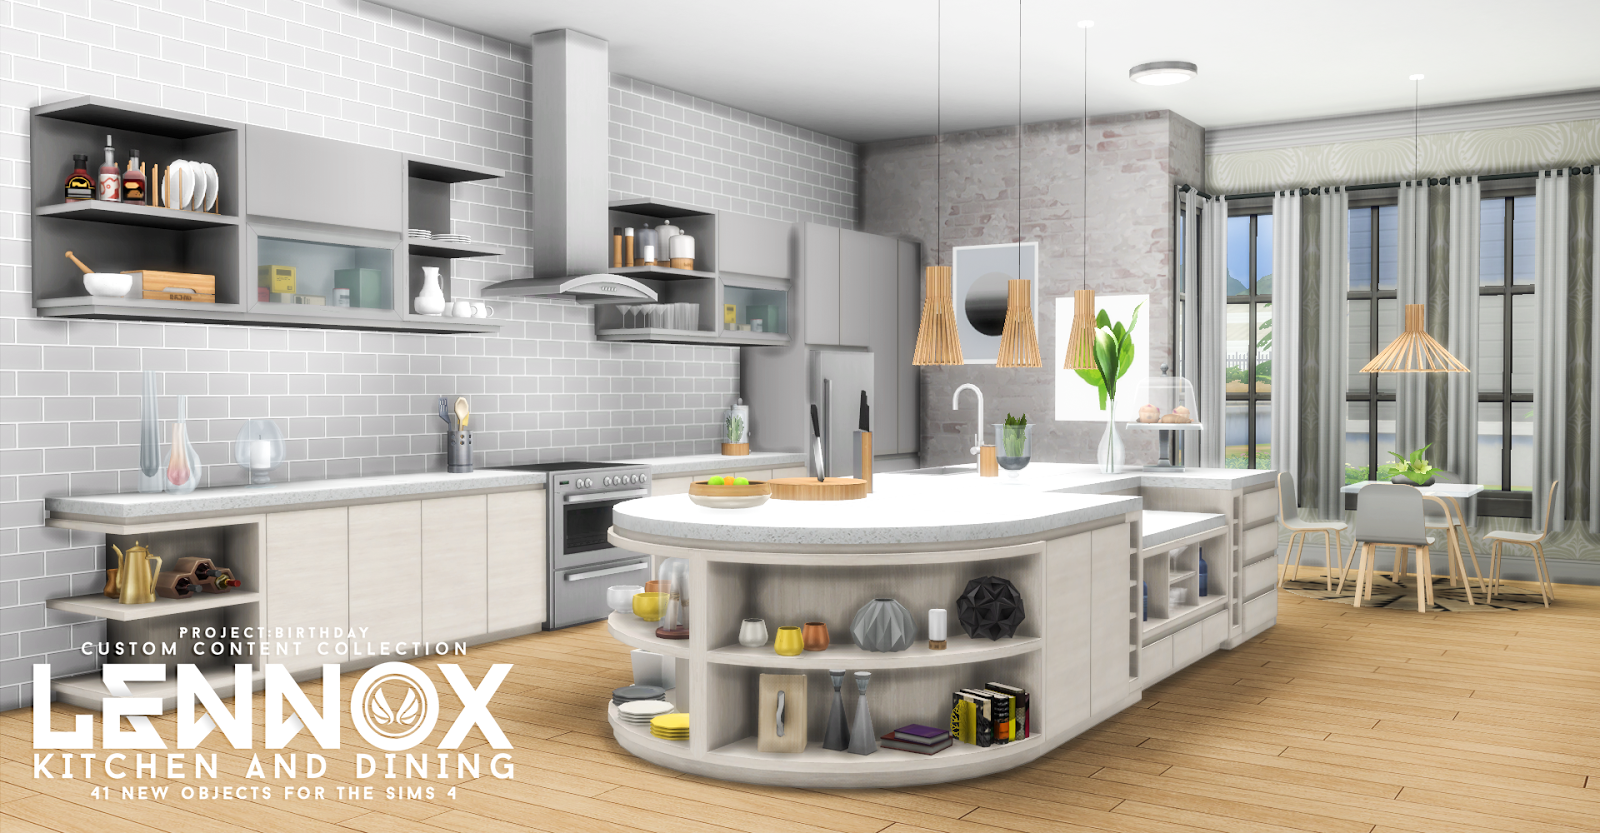 My sims 4 blog updated lennox kitchen and dining set by for Kitchen ideas sims 4